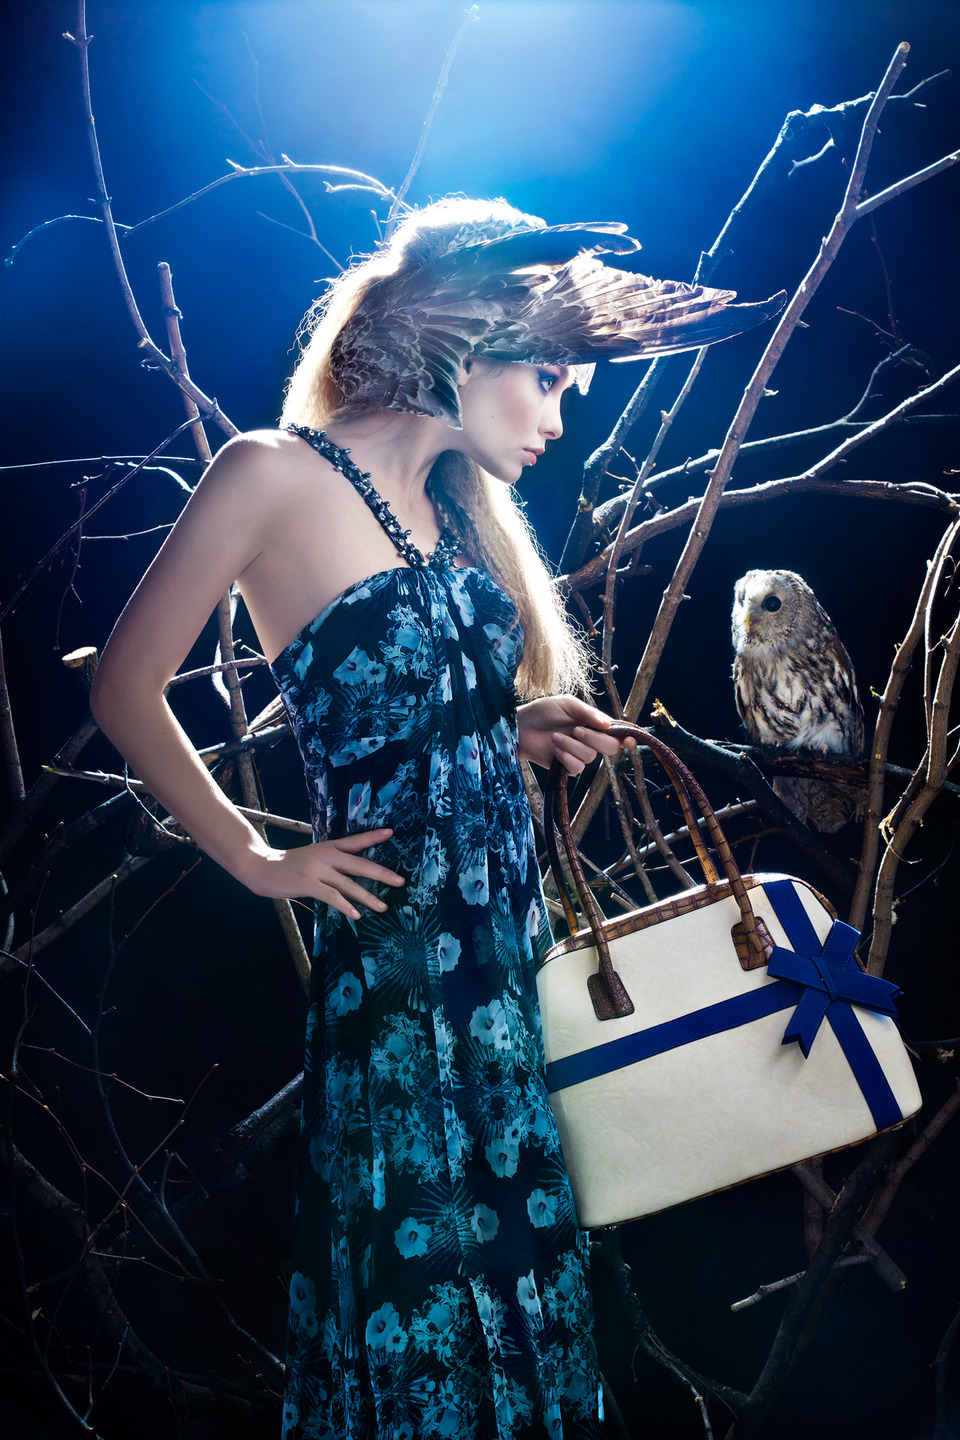 Woman and owl | glam, woman, model, slim, long dress, handbag, owl, light, branches, wings